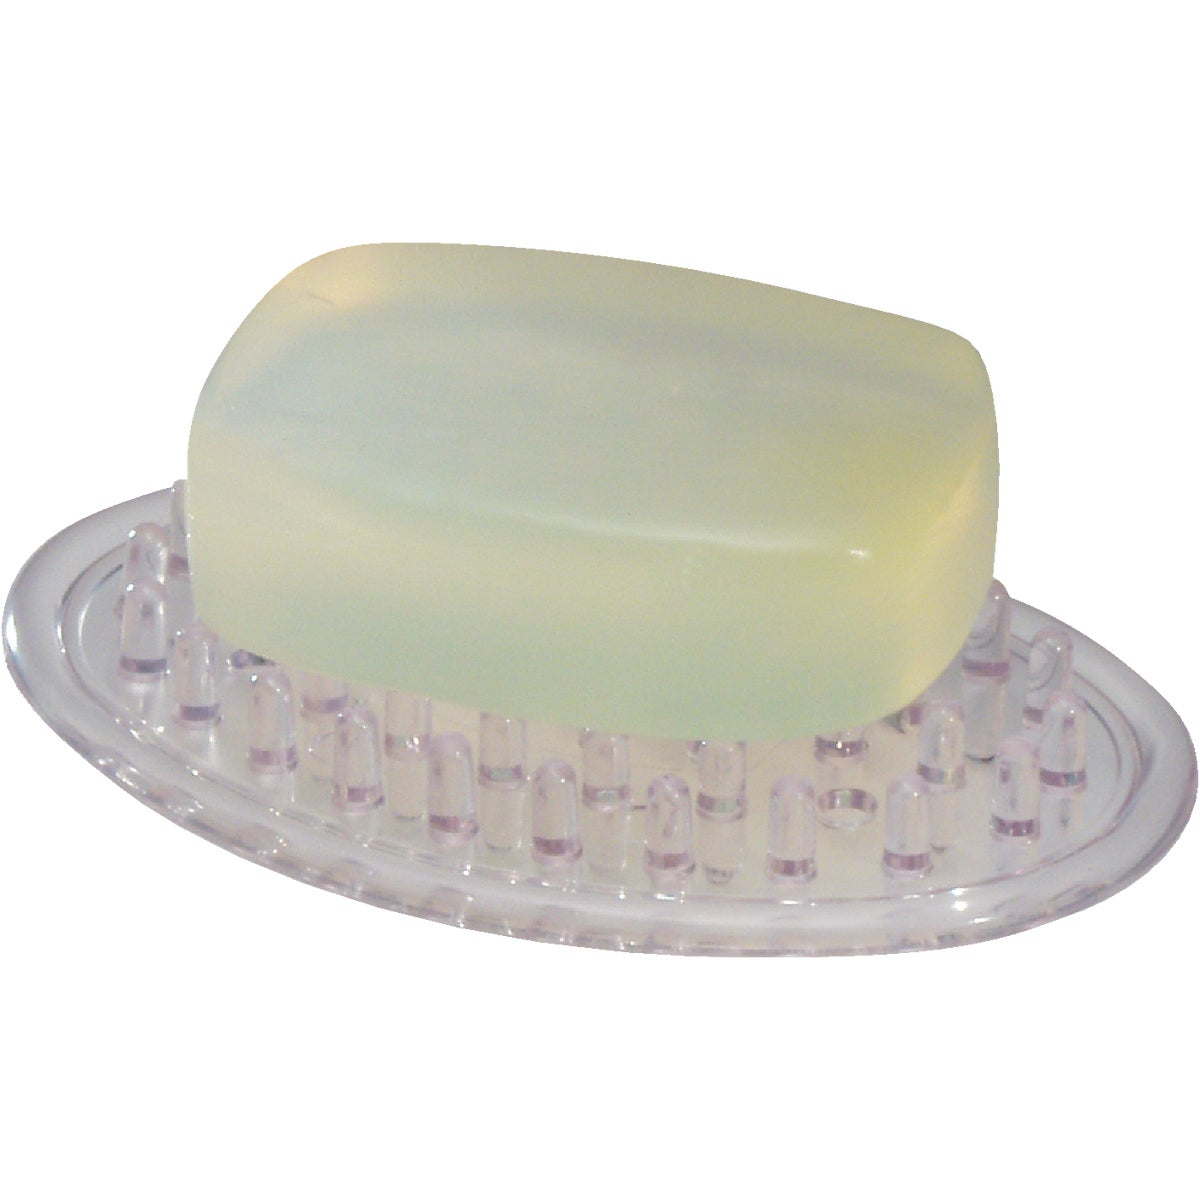 Clear Soap Holder